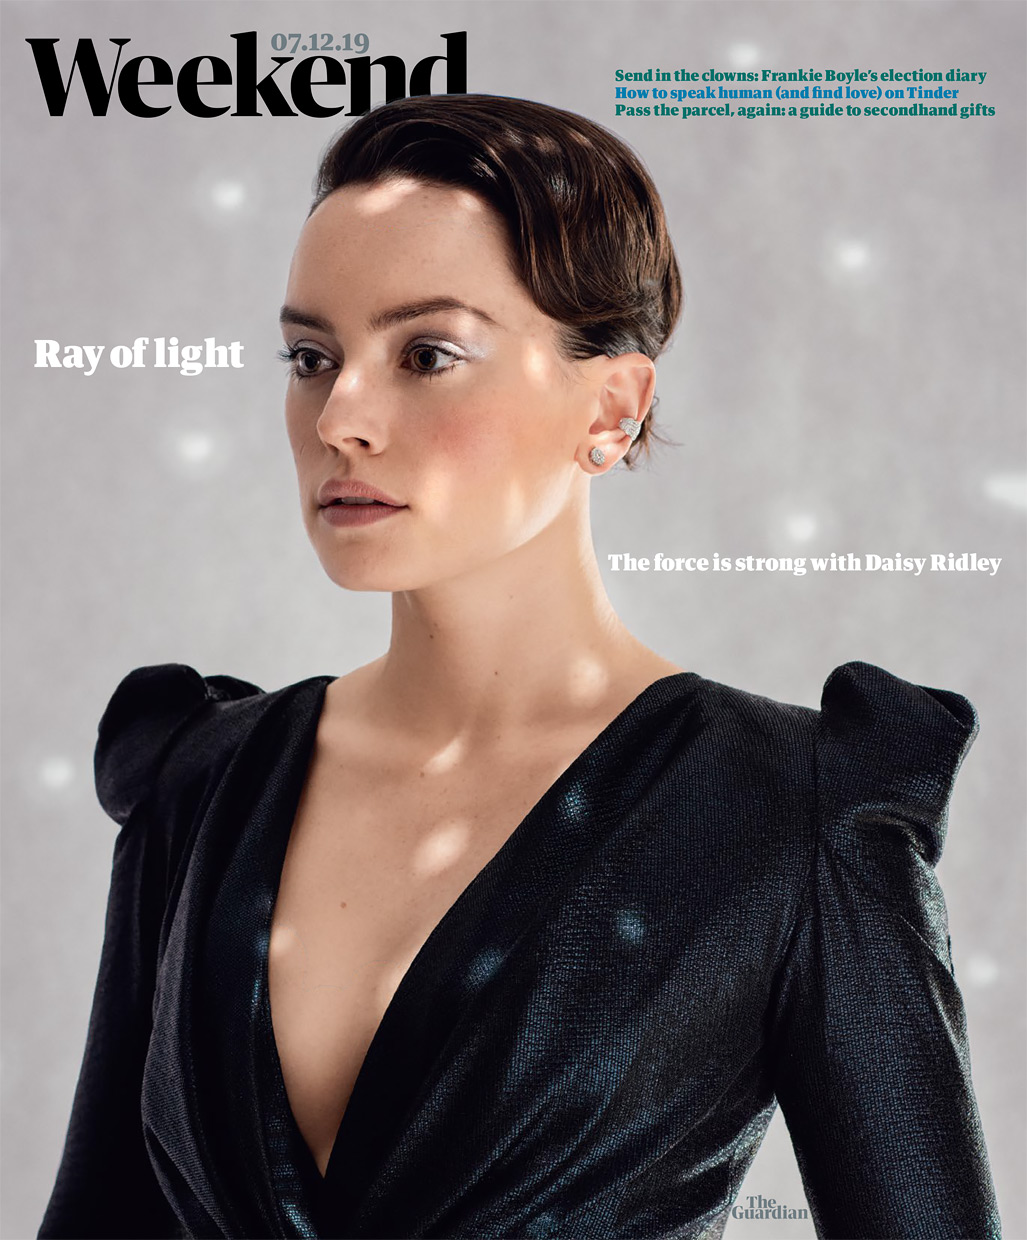 Daisy Ridley. The Guardian.